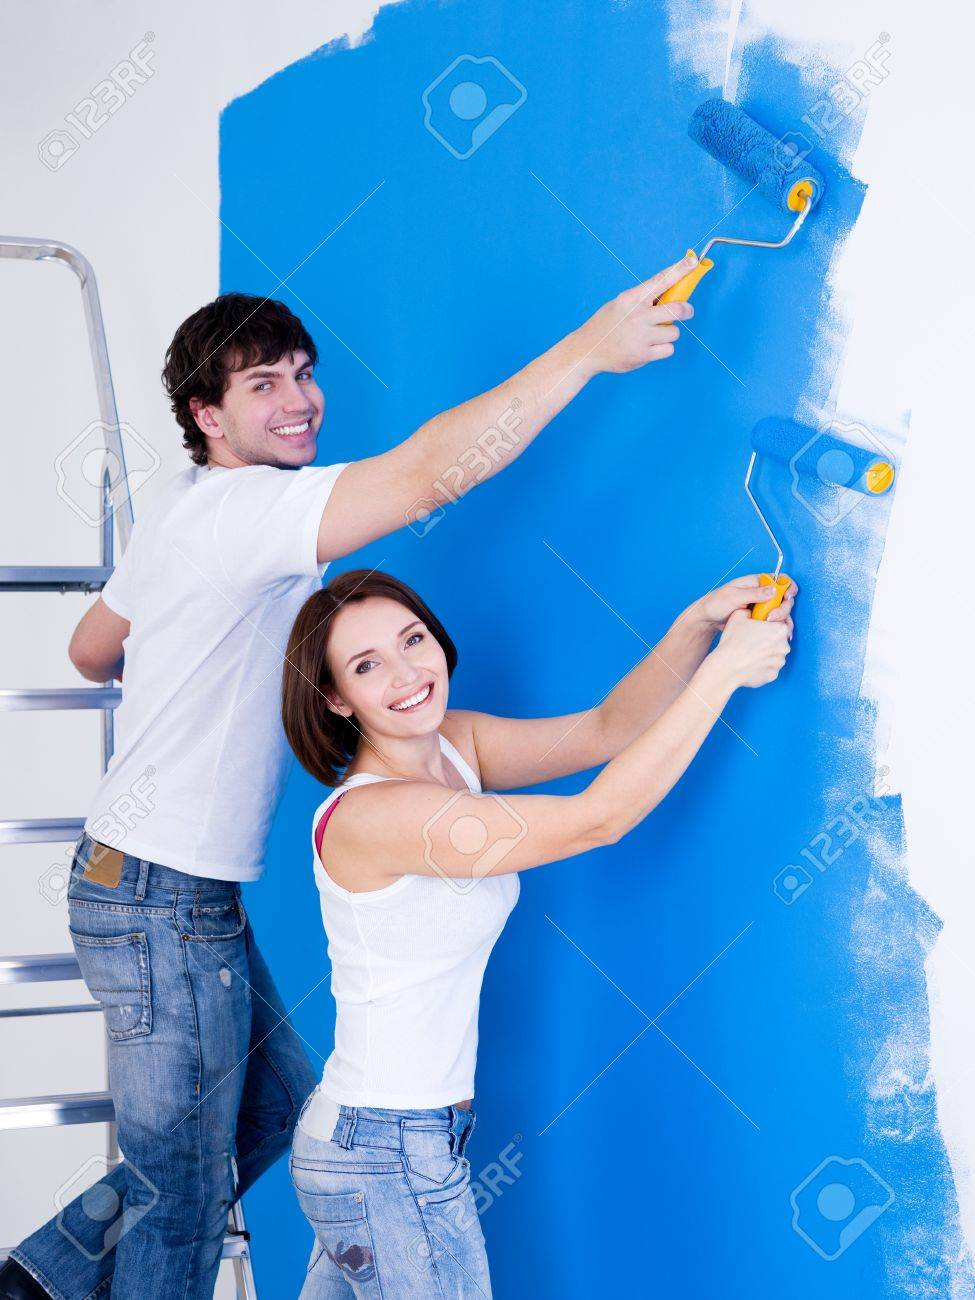 Portrait of happy smiling couple brushing the wall - indoors Stock Photo - 7917544